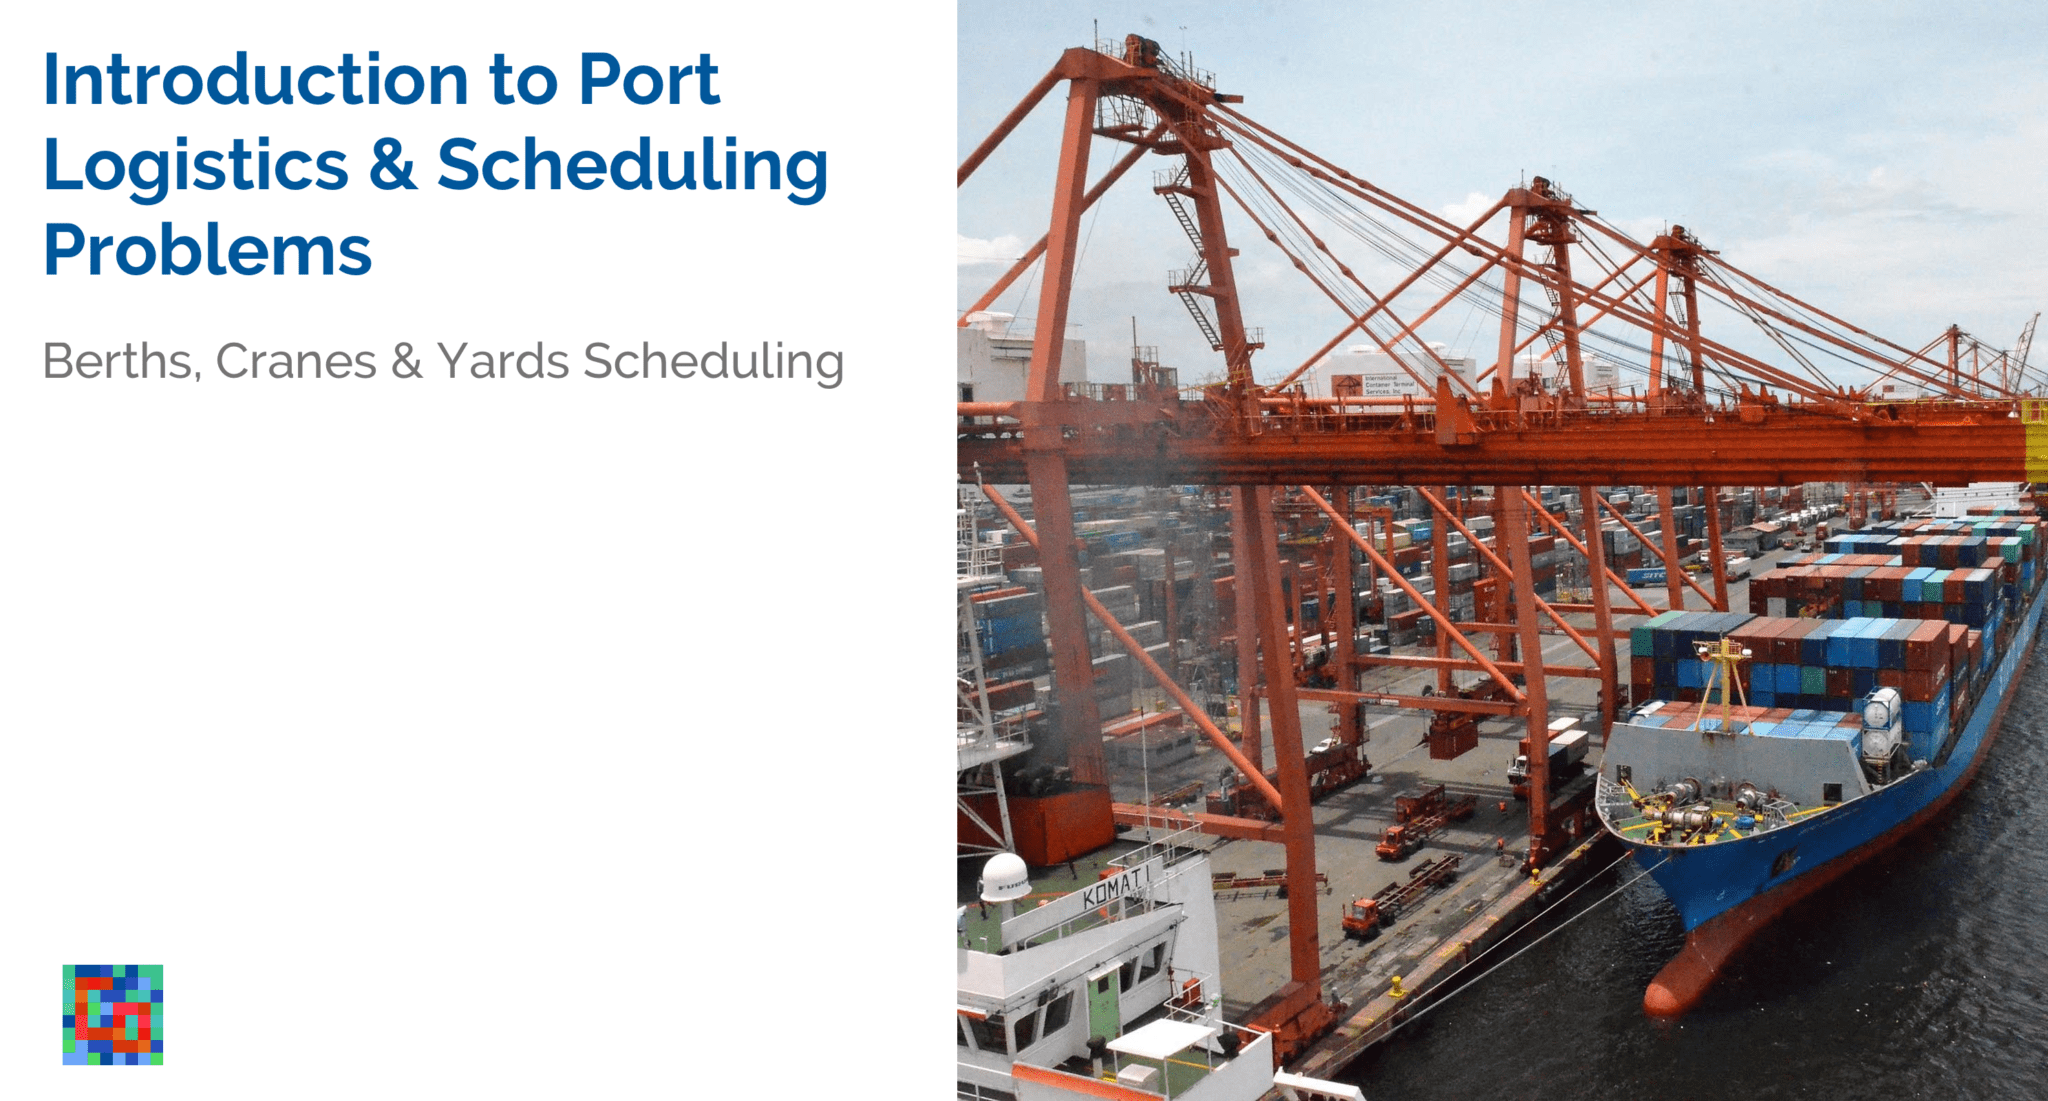 Introduction to Port Logistics and Scheduling Problems